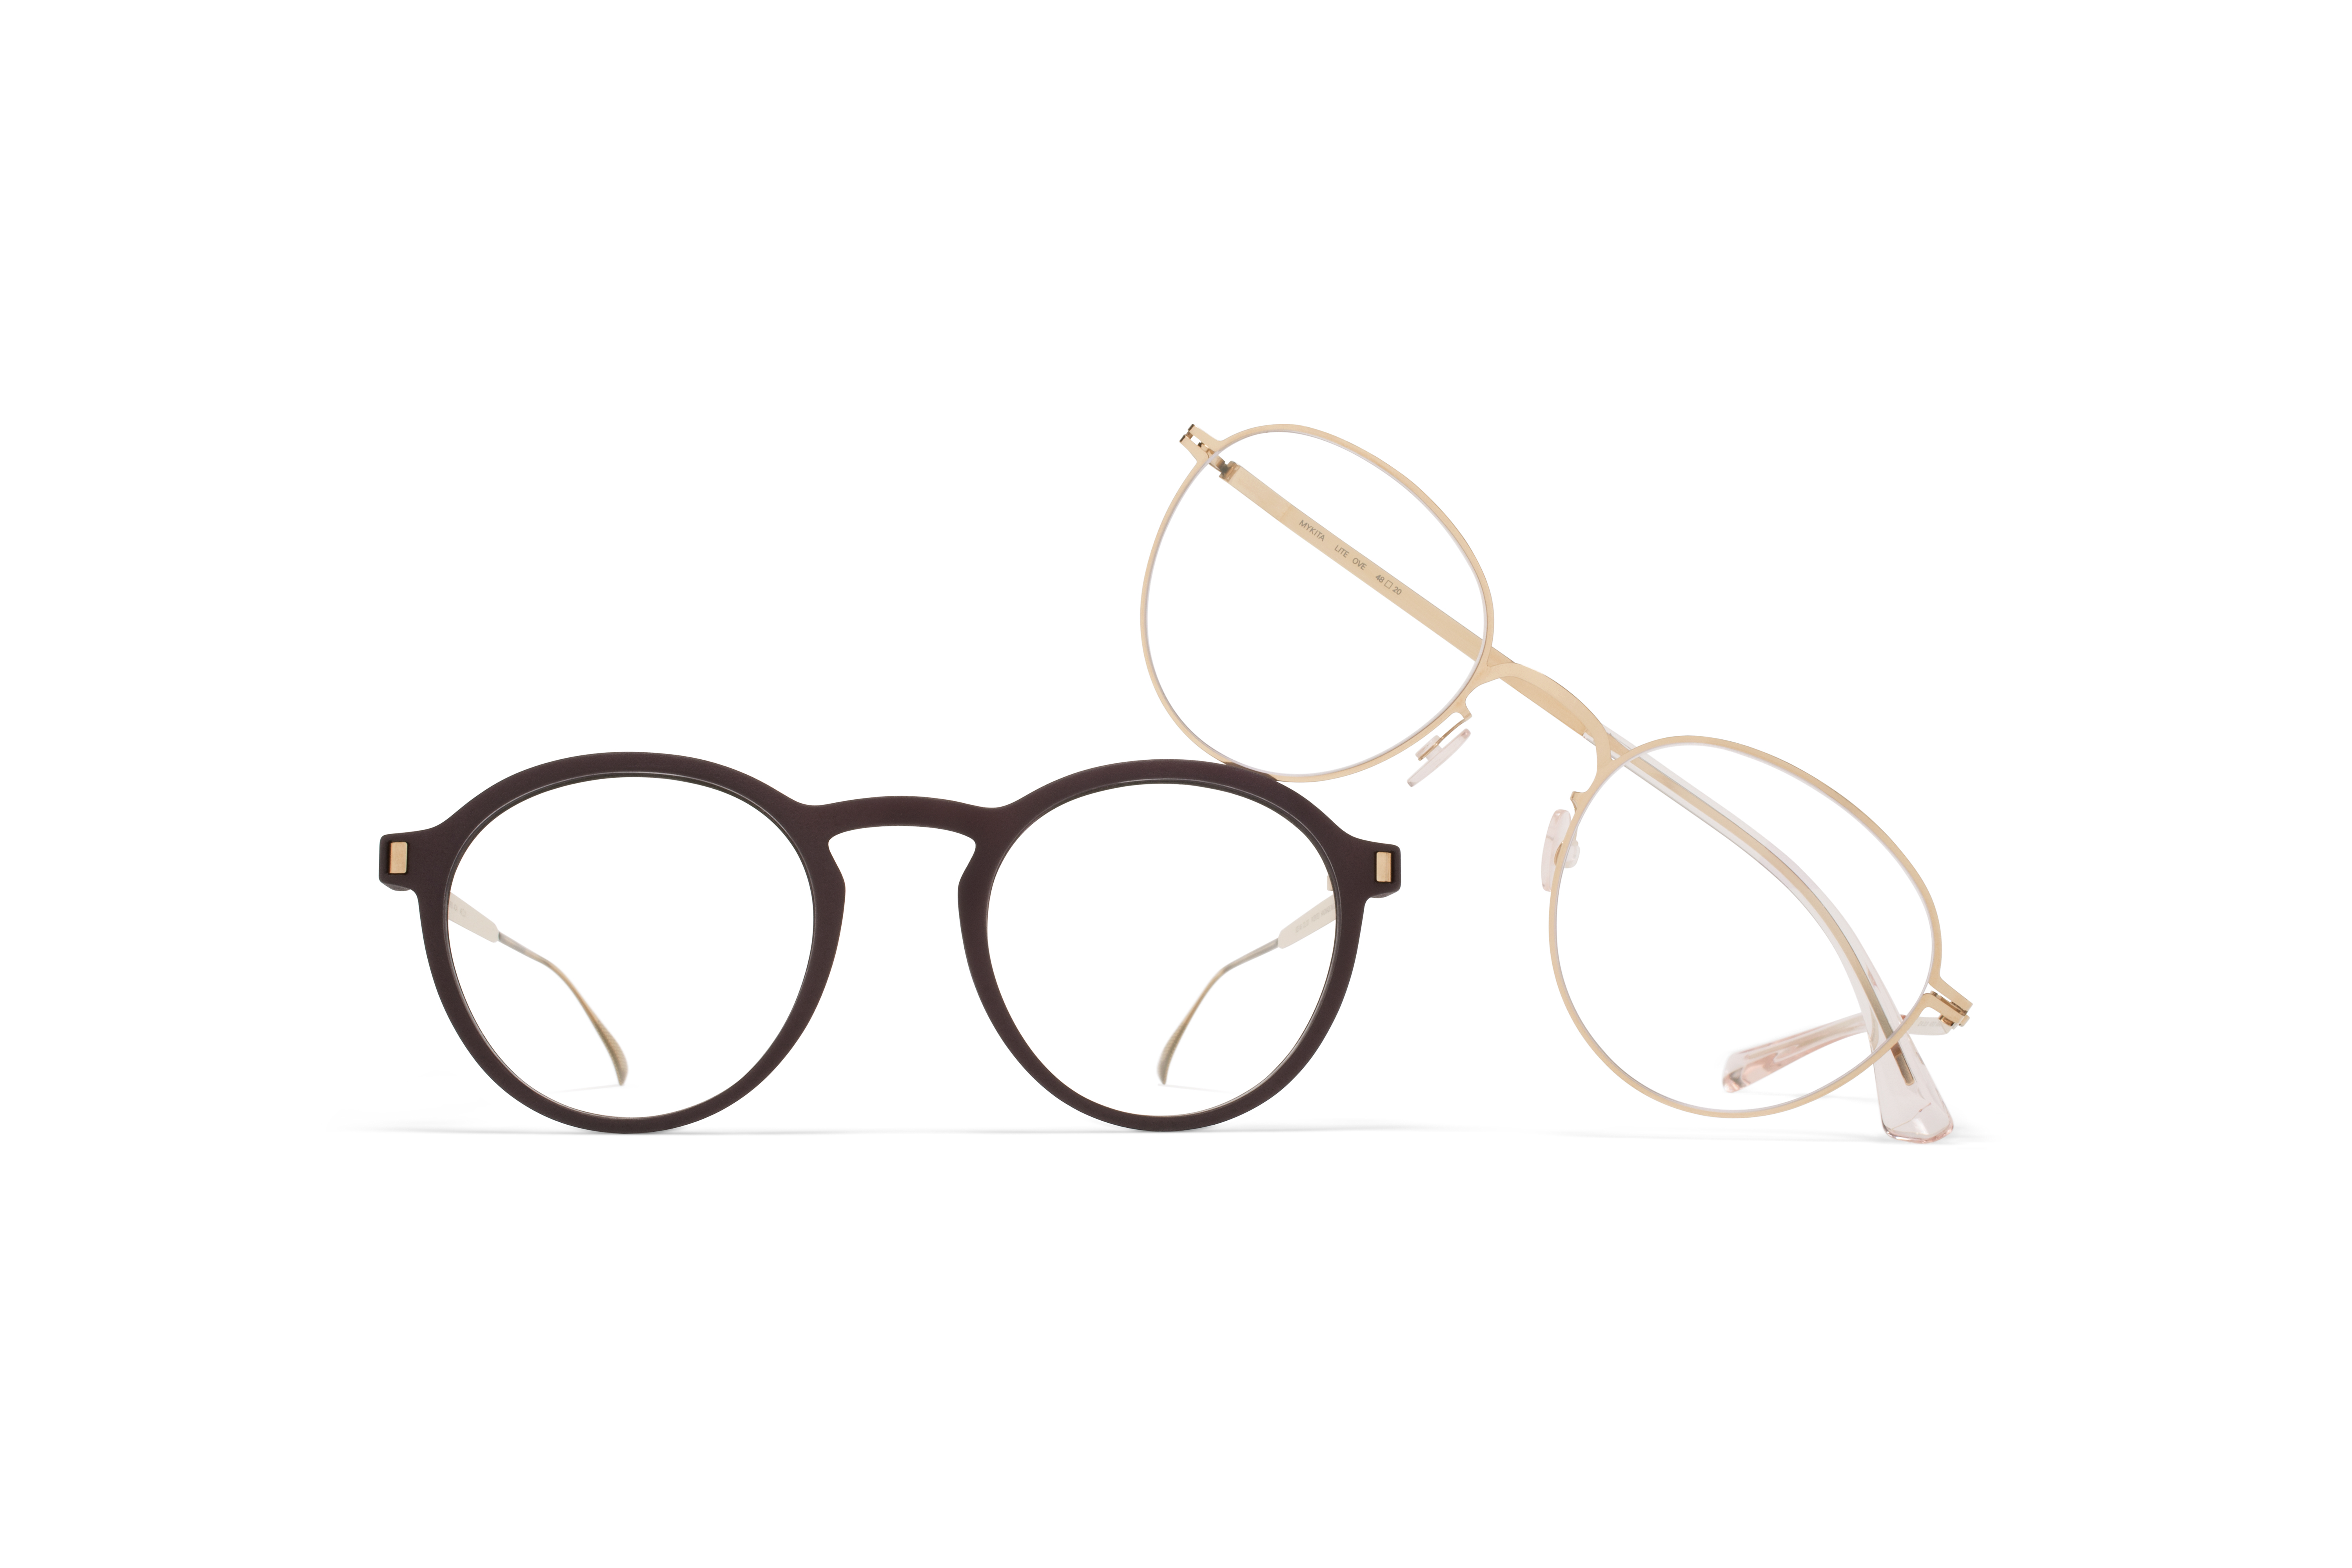 MYKITA Mylon Hybrid Rx Acai Mh8 Ebony Brown Champagne Gold Clear MYKITA Lite Acetate Rx Ove Champagne Gold Clear Ch